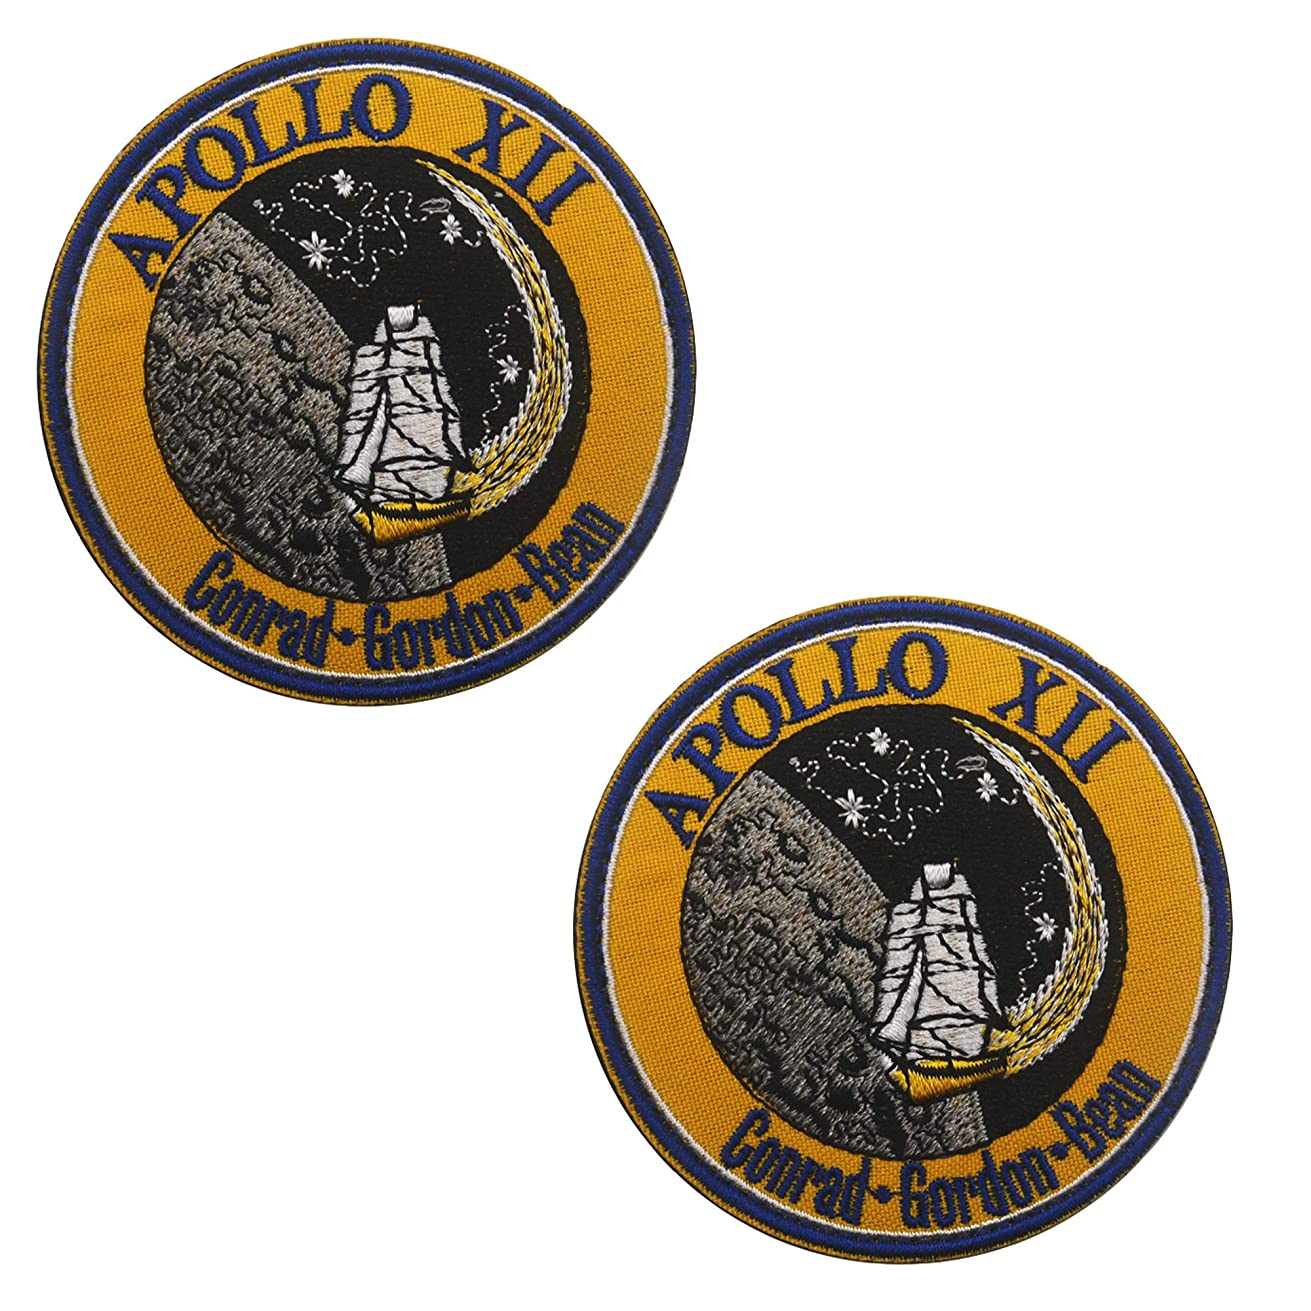 NASA Apollo XII Space Embroidered Patches DIY Embroidered Patch Costume Applique Badge Set 3.15 Inch Sized